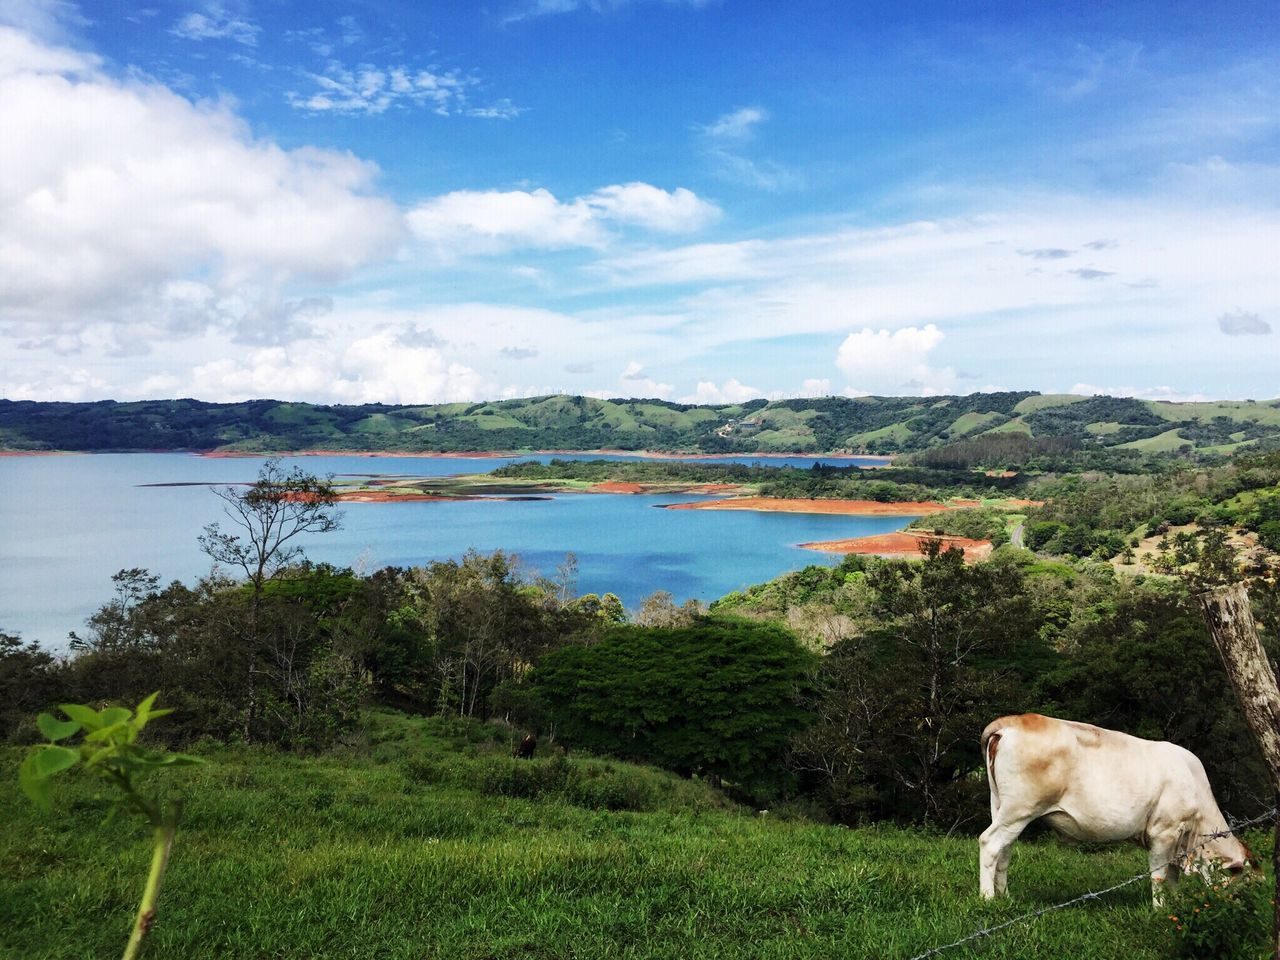 Animal Themes Domestic Animals One Animal Mammal Grass Sky Water Tranquil Scene Tranquility Field Lake Full Length Livestock Non-urban Scene Domestic Cattle Cloud - Sky Zoology Nature Grazing Cattle Costa Rica Hidden Gems